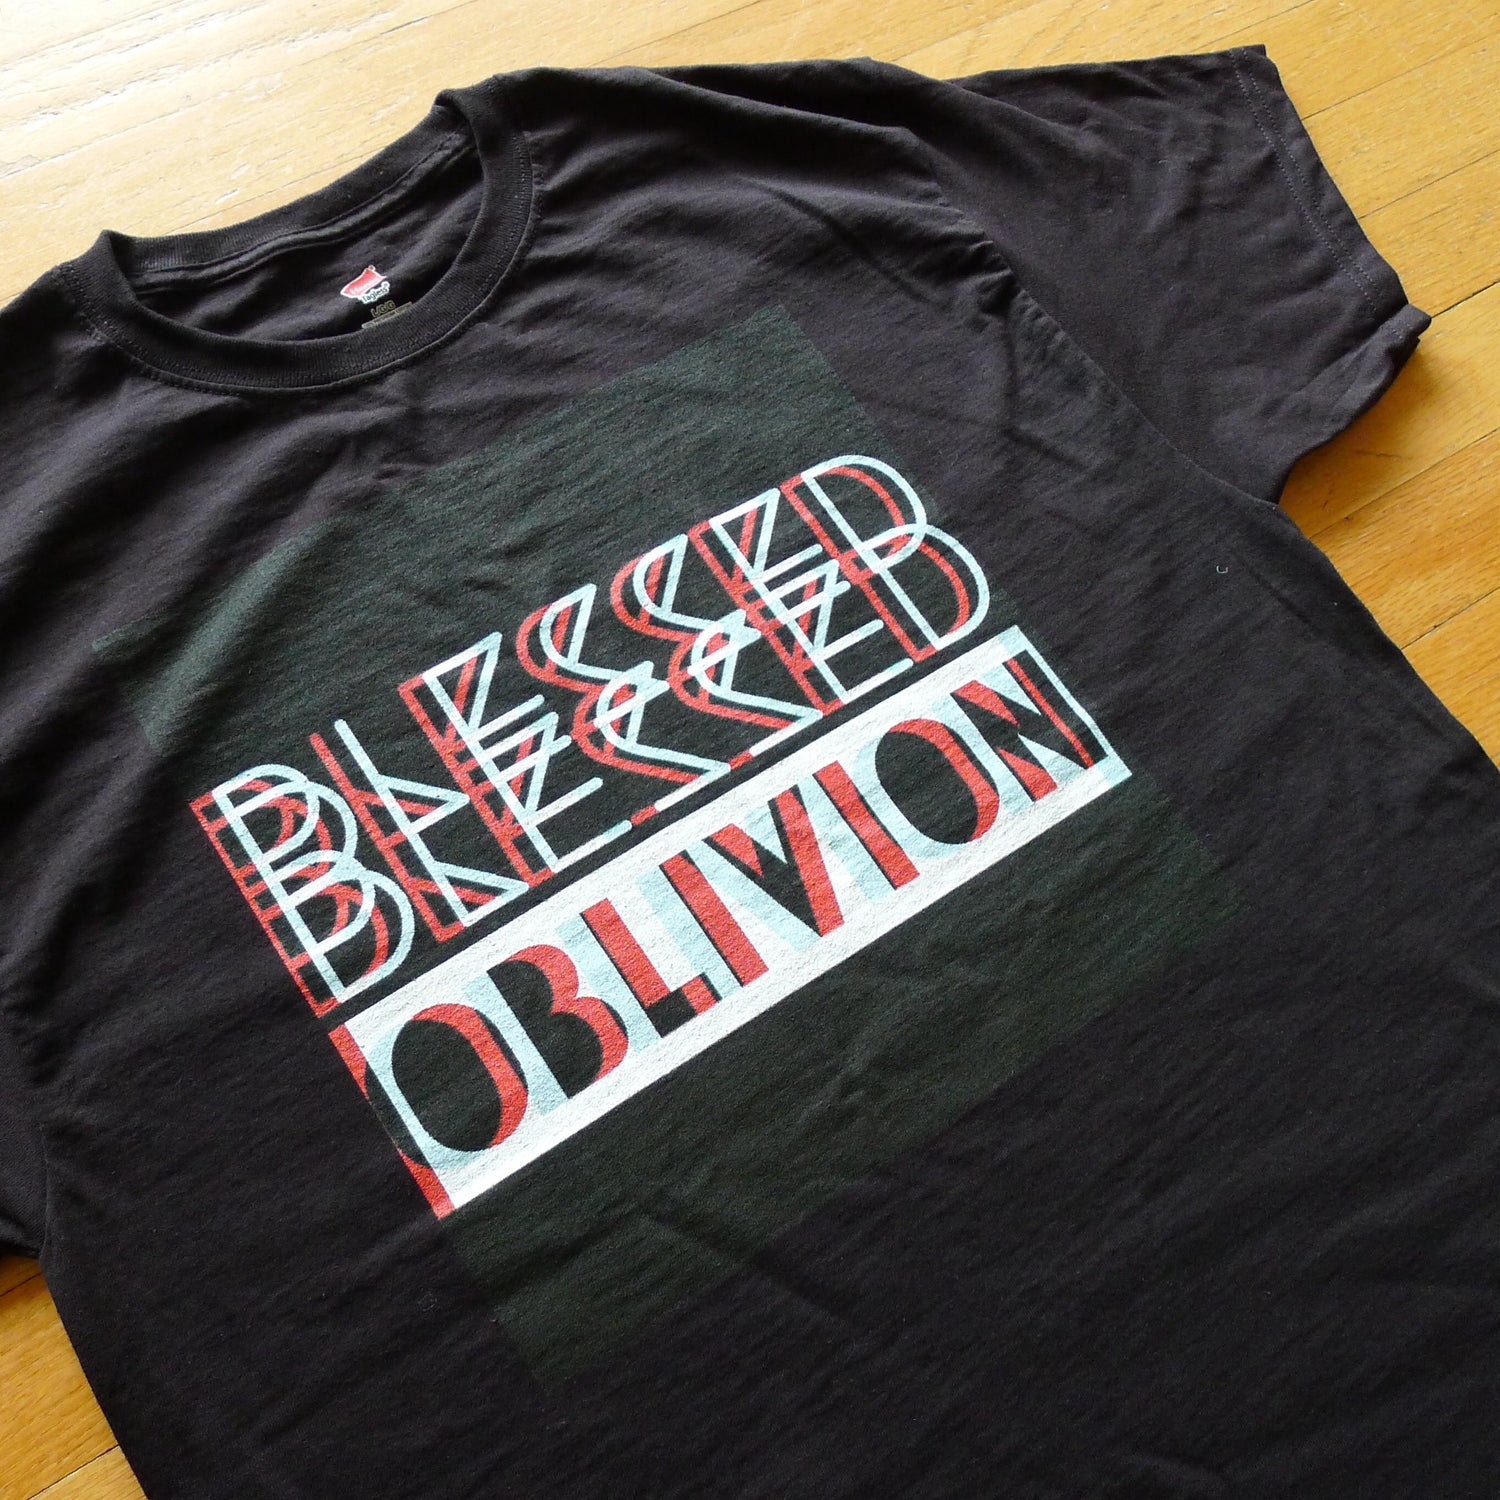 Image of Blessed Blesssed Oblivion / Glitch Shirt / Black